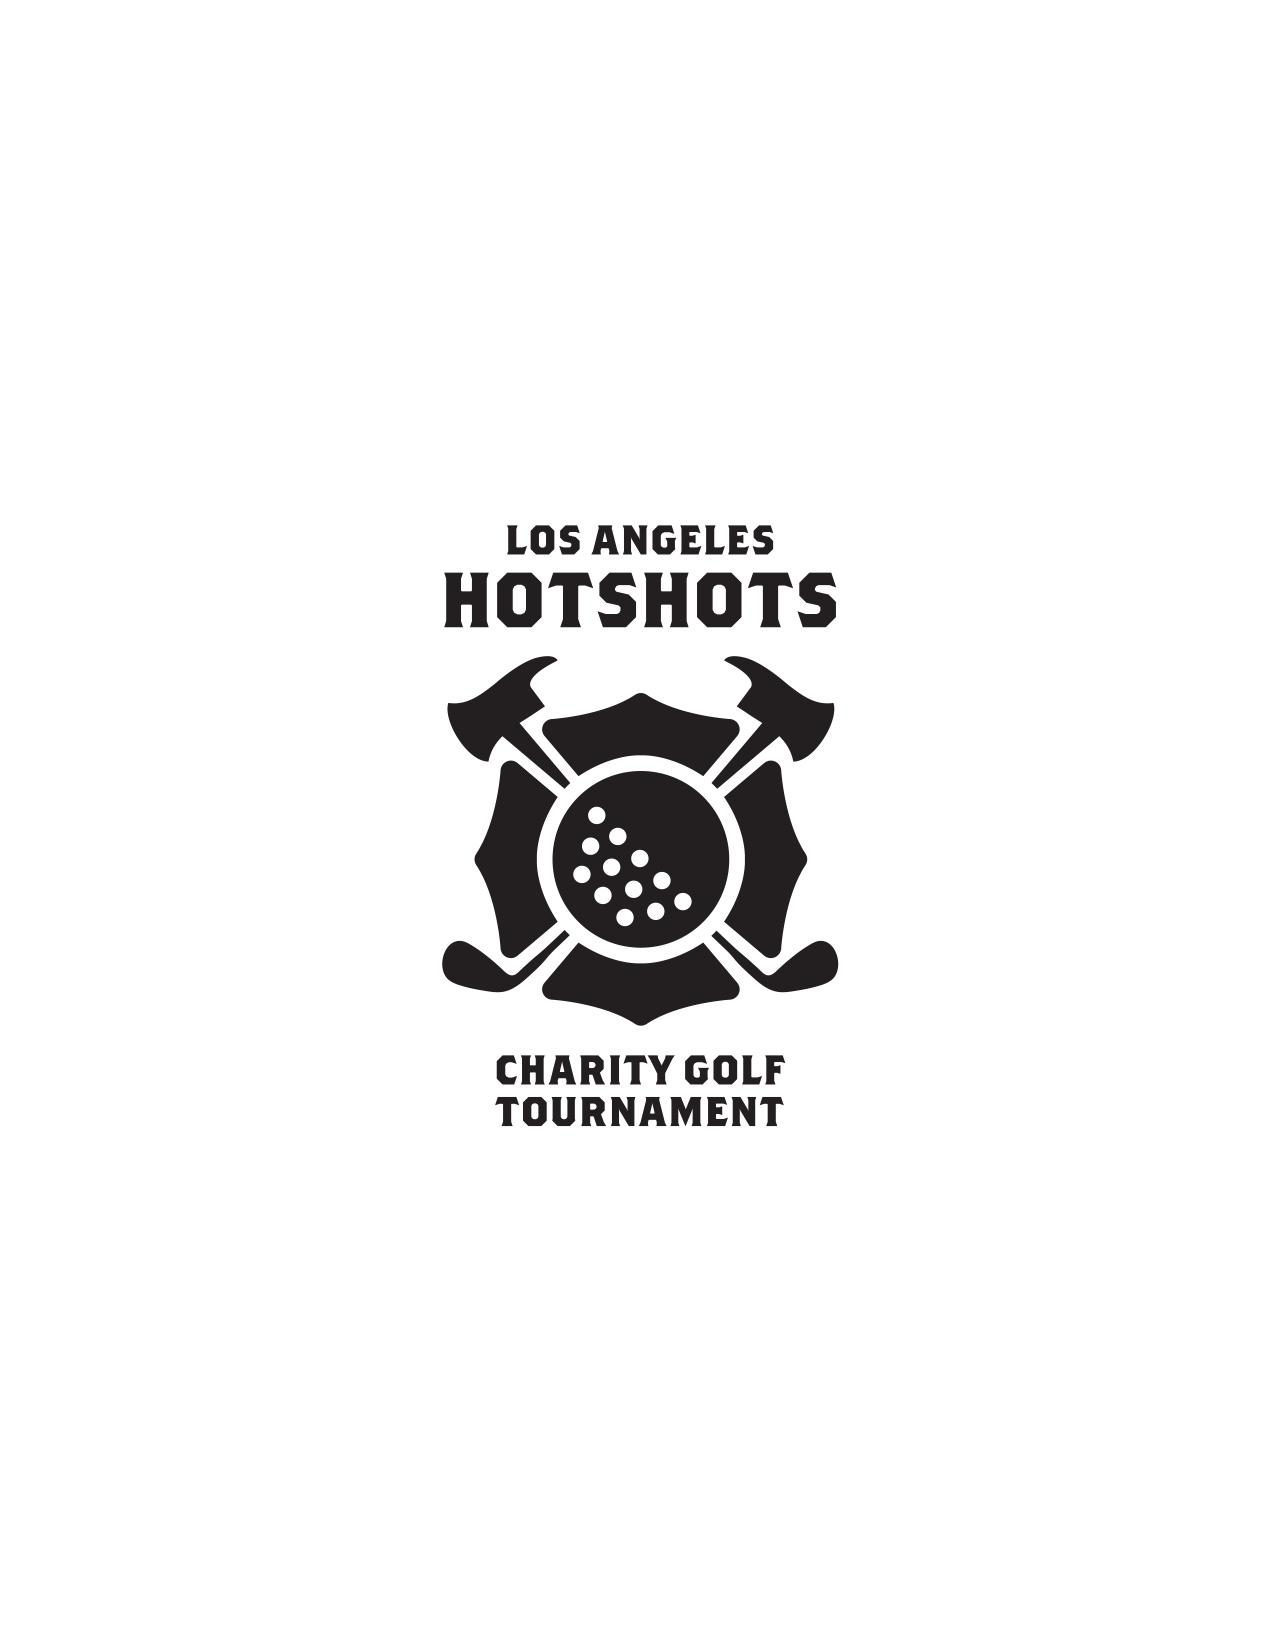 Los Angeles Hotshots Charity Golf Tournament